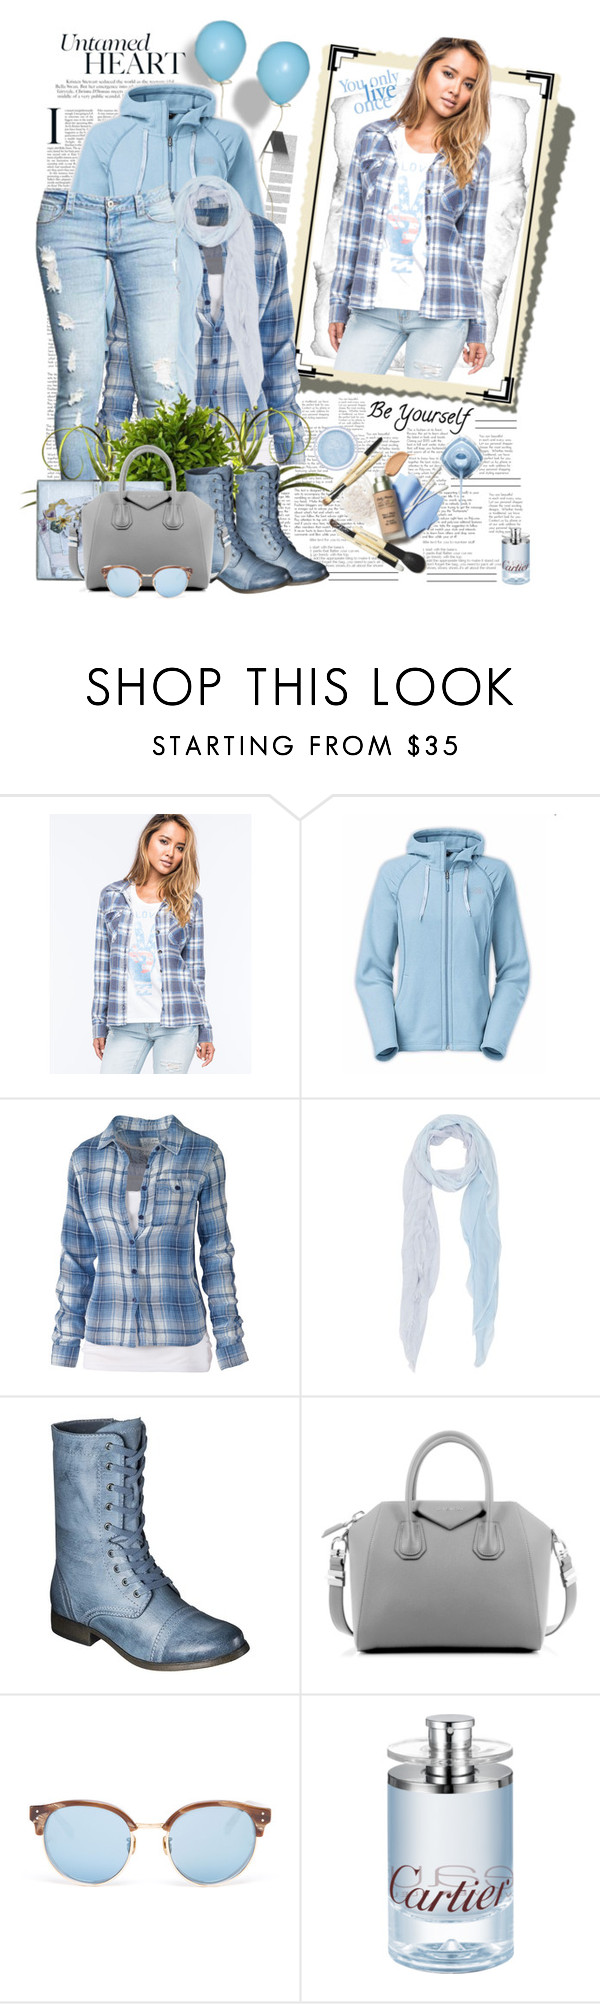 """Untamed Heart"" by summersunshinesk7 ❤ liked on Polyvore featuring Billabong, The North Face, Fat Face, Barneys New York, Mossimo Supply Co., Givenchy, Linda Farrow, women's clothing, women and female"